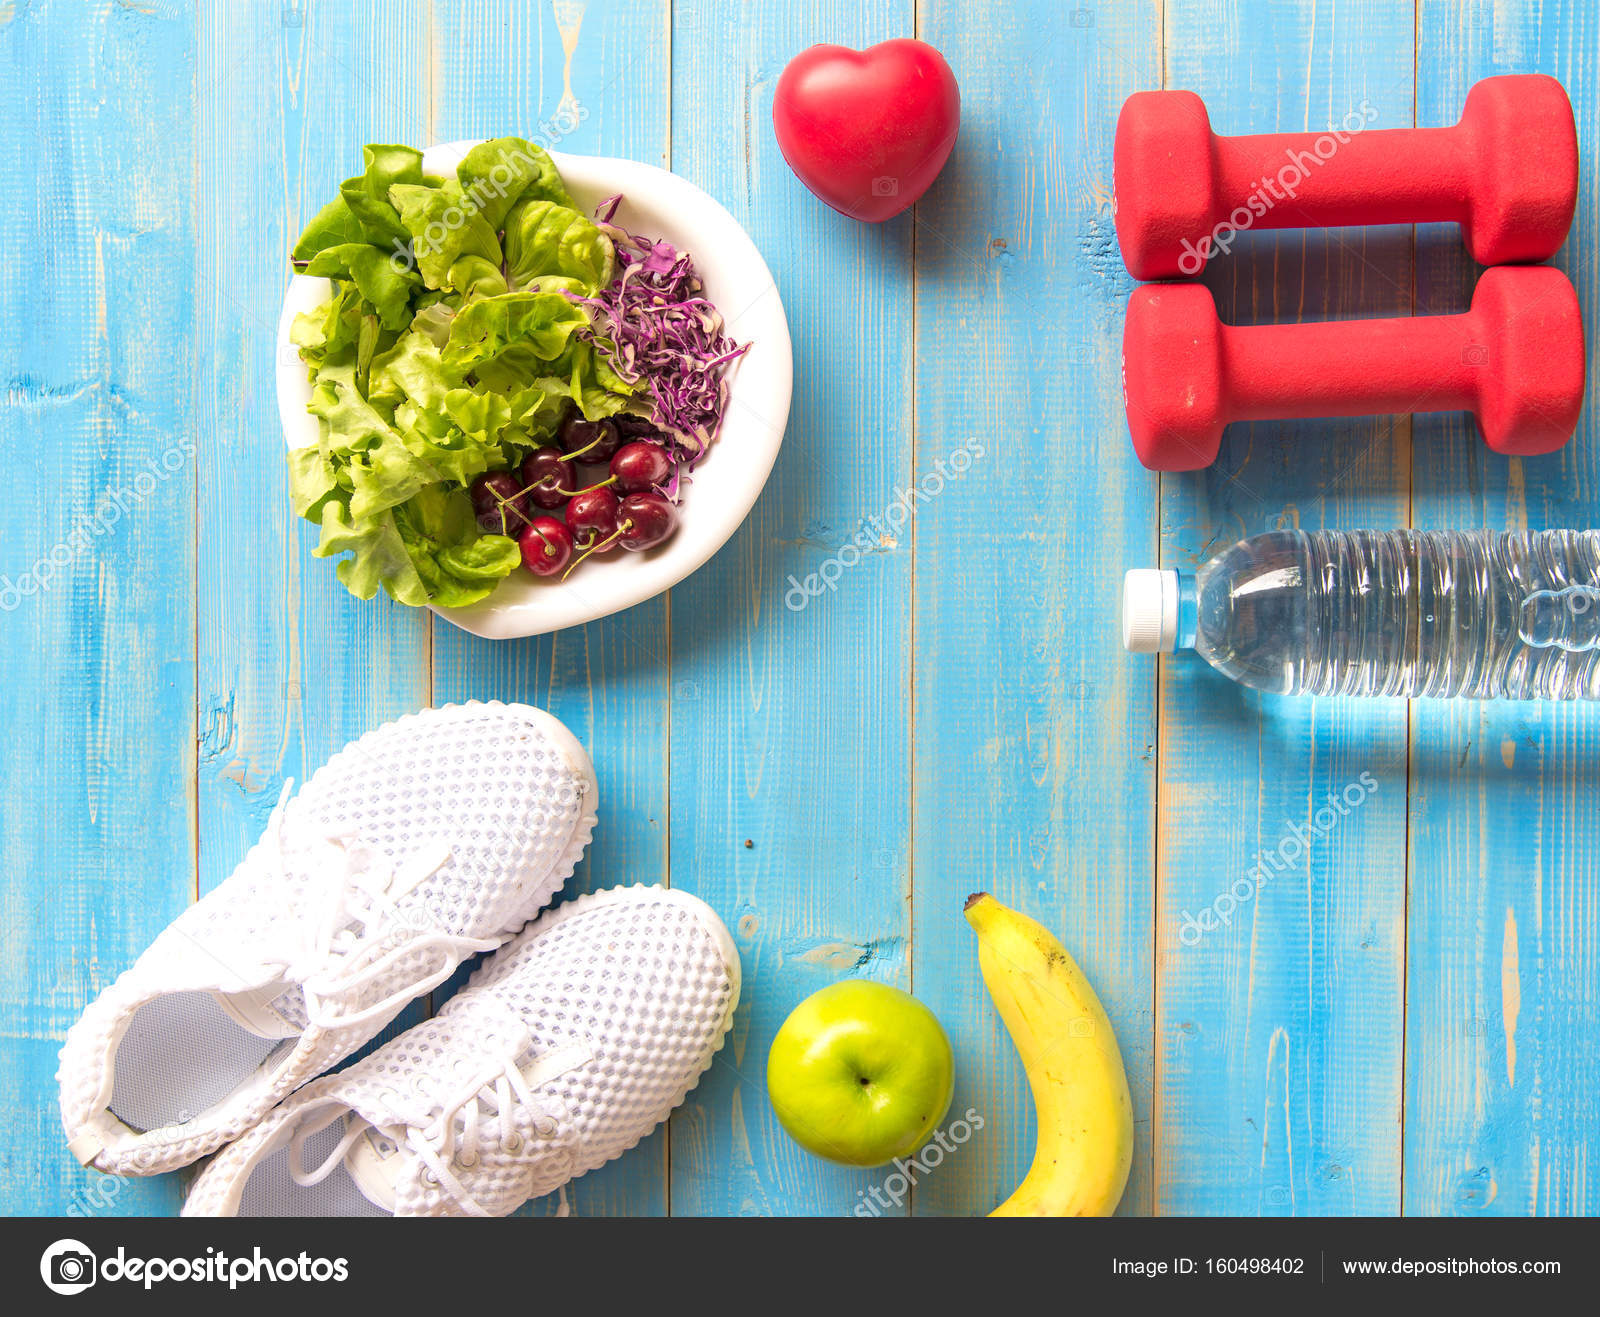 Healthy Lifestyle Sport Equipment Fitness Sneakers Green Apple Fresh Water And Healthy Food On Blue Wood Background Healthy Concept Stock Photo C Freebird7977 160498402